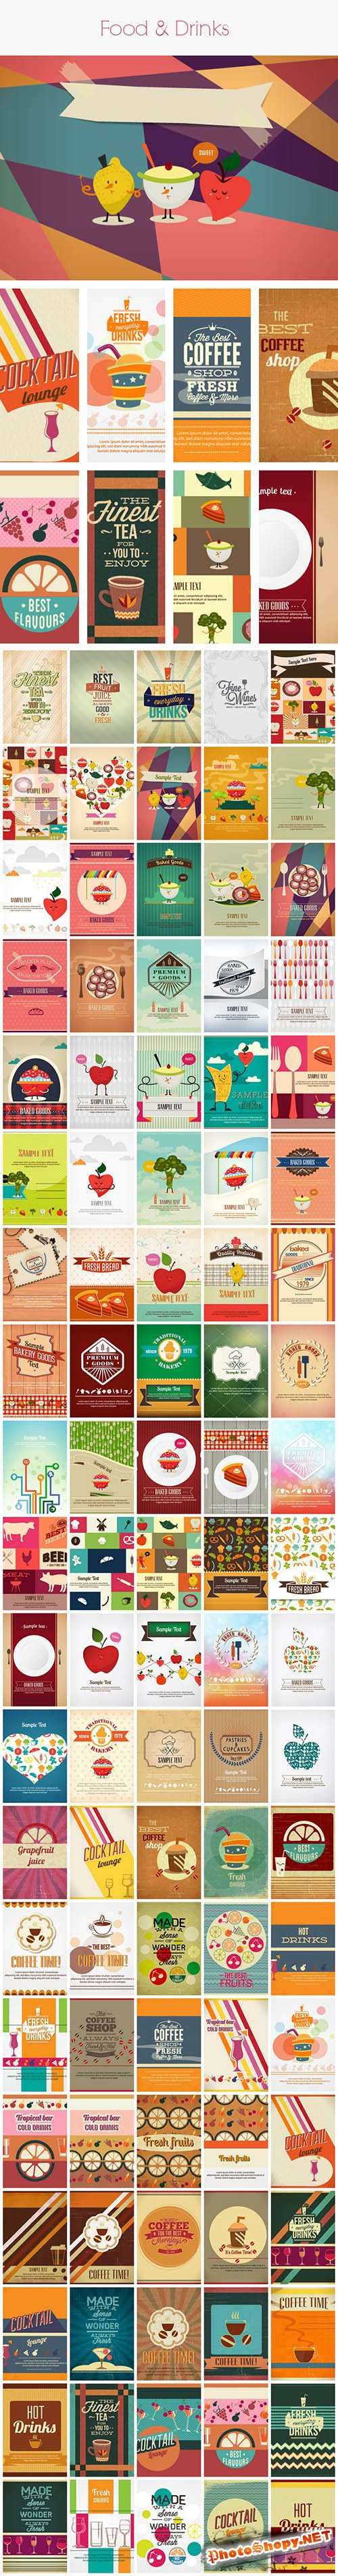 100 Food & Drinks Vector Illustrations Bundle